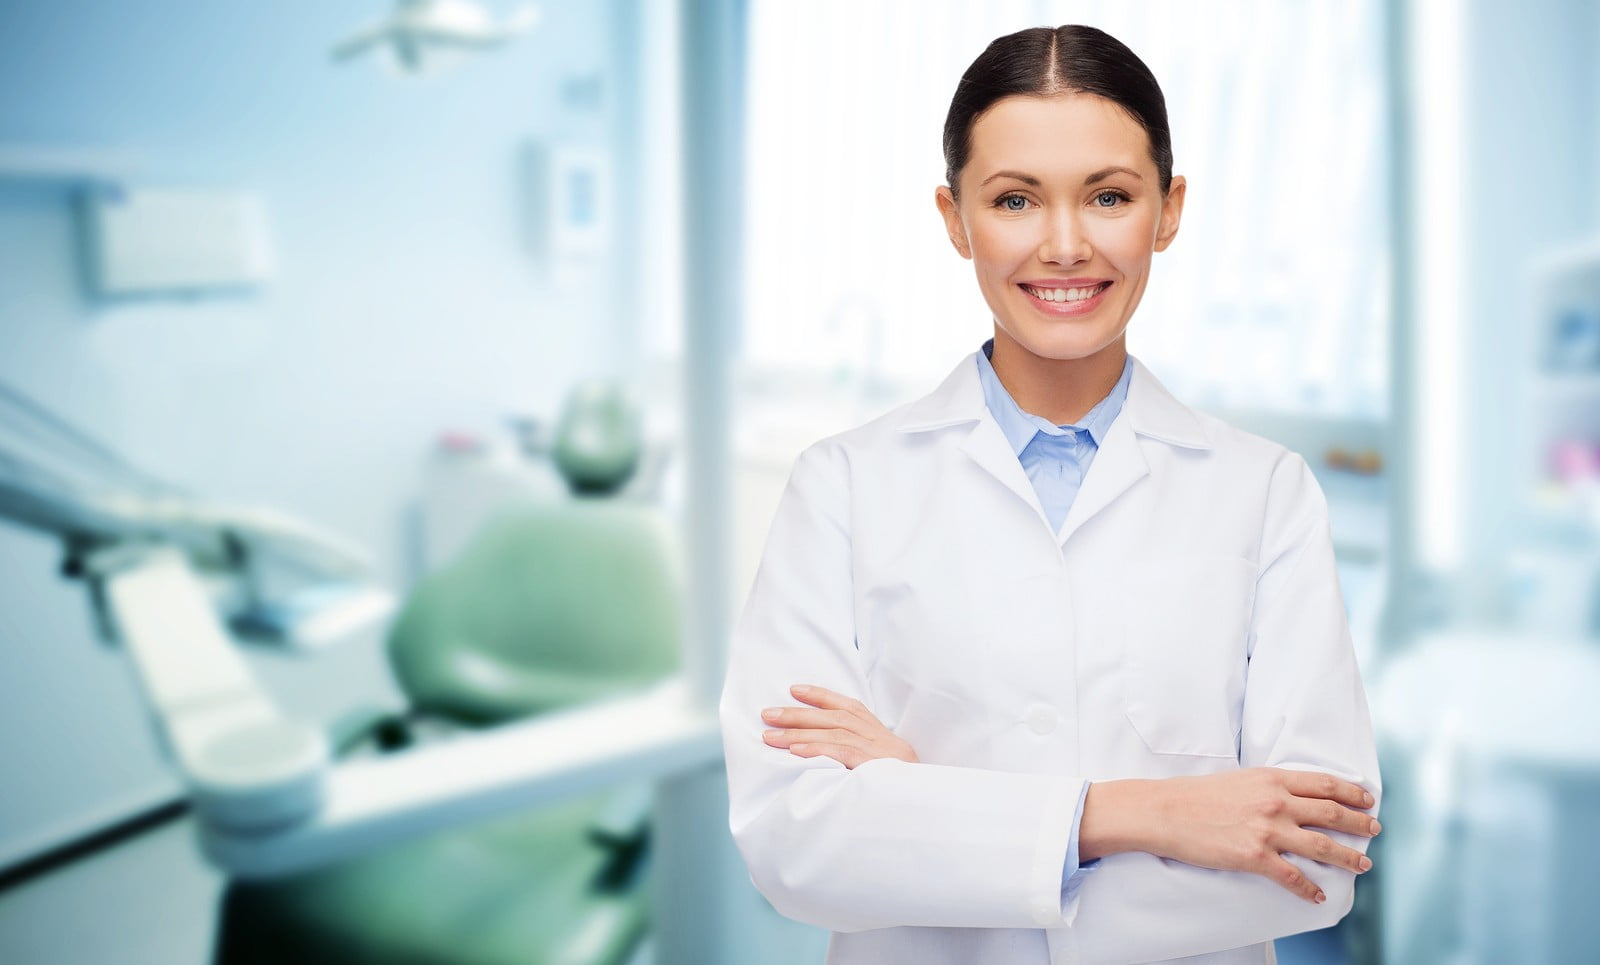 What Is The Best Way To Reach New Patients For My Dental Practice?